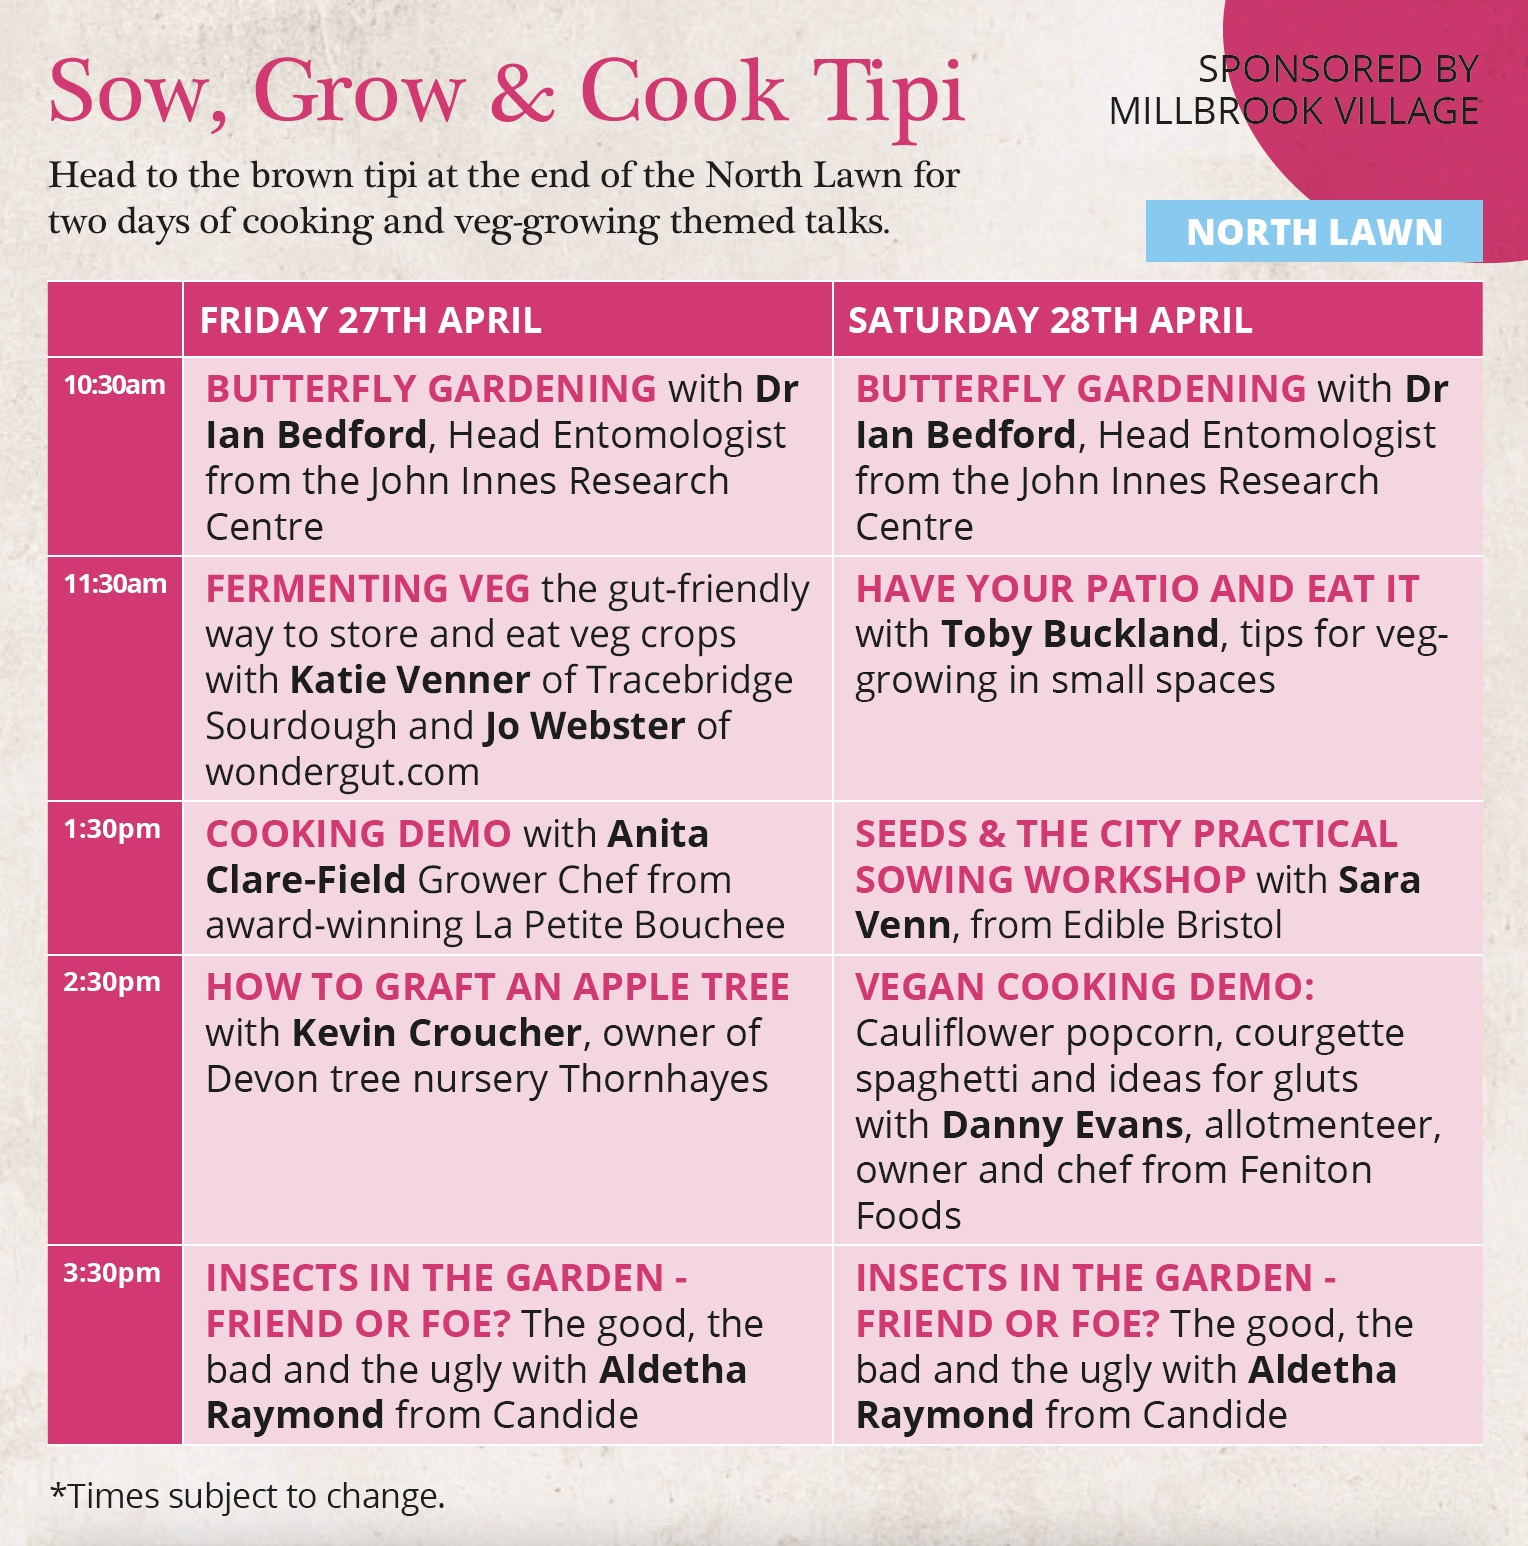 Sow Grow & Cook Tipi